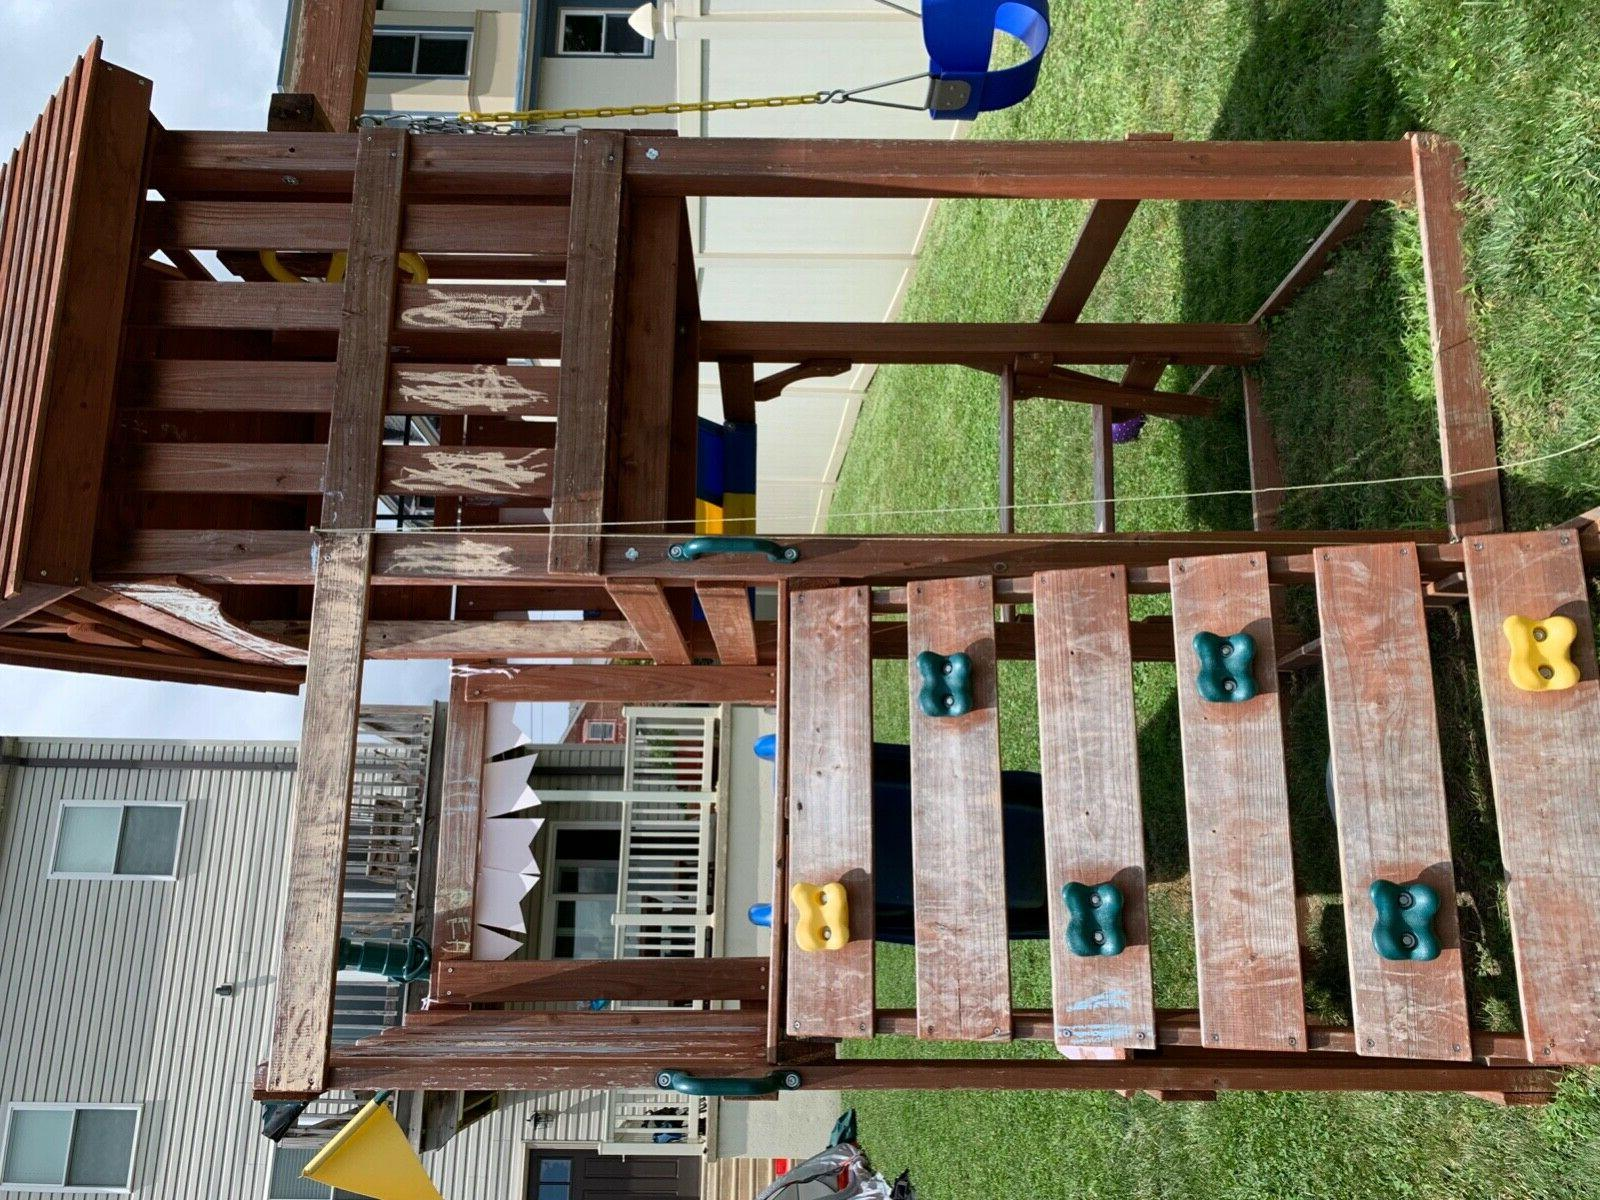 used kids swing sets 2019 play systems